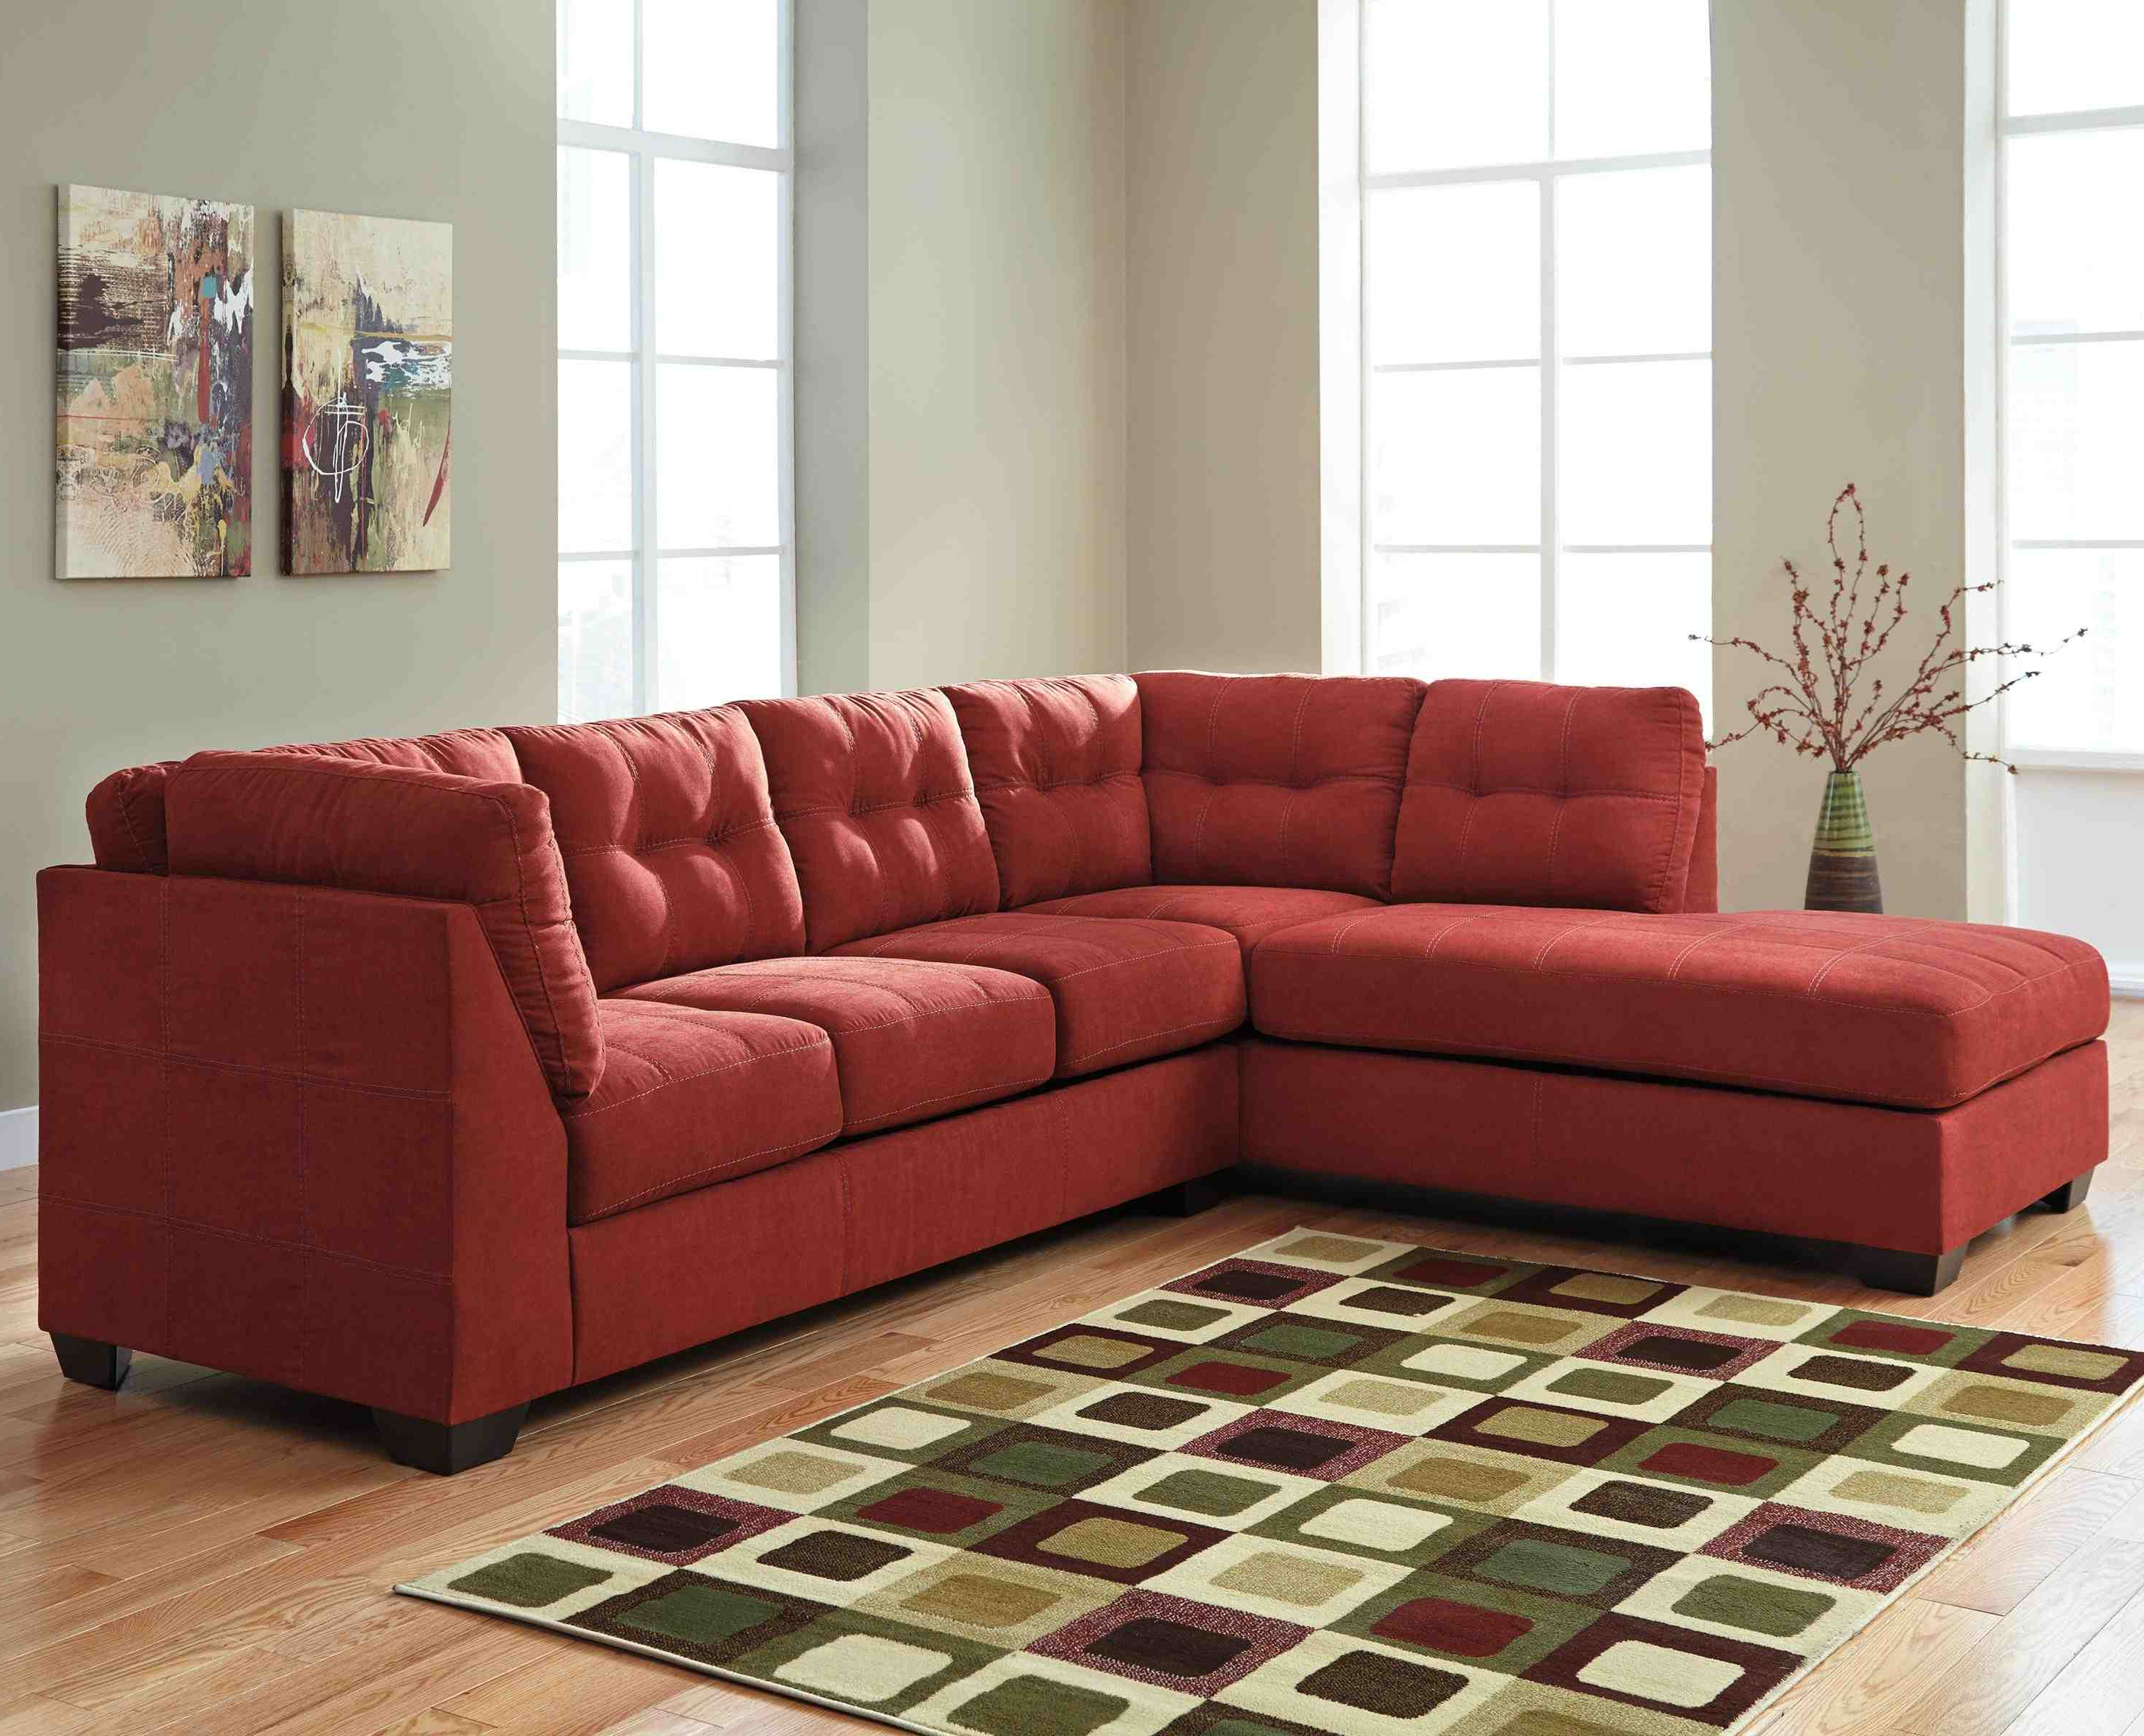 Delano 2 Piece Sectional W/laf Oversized Chaise Living Spaces Within Well Known Delano 2 Piece Sectionals With Laf Oversized Chaise (View 14 of 20)